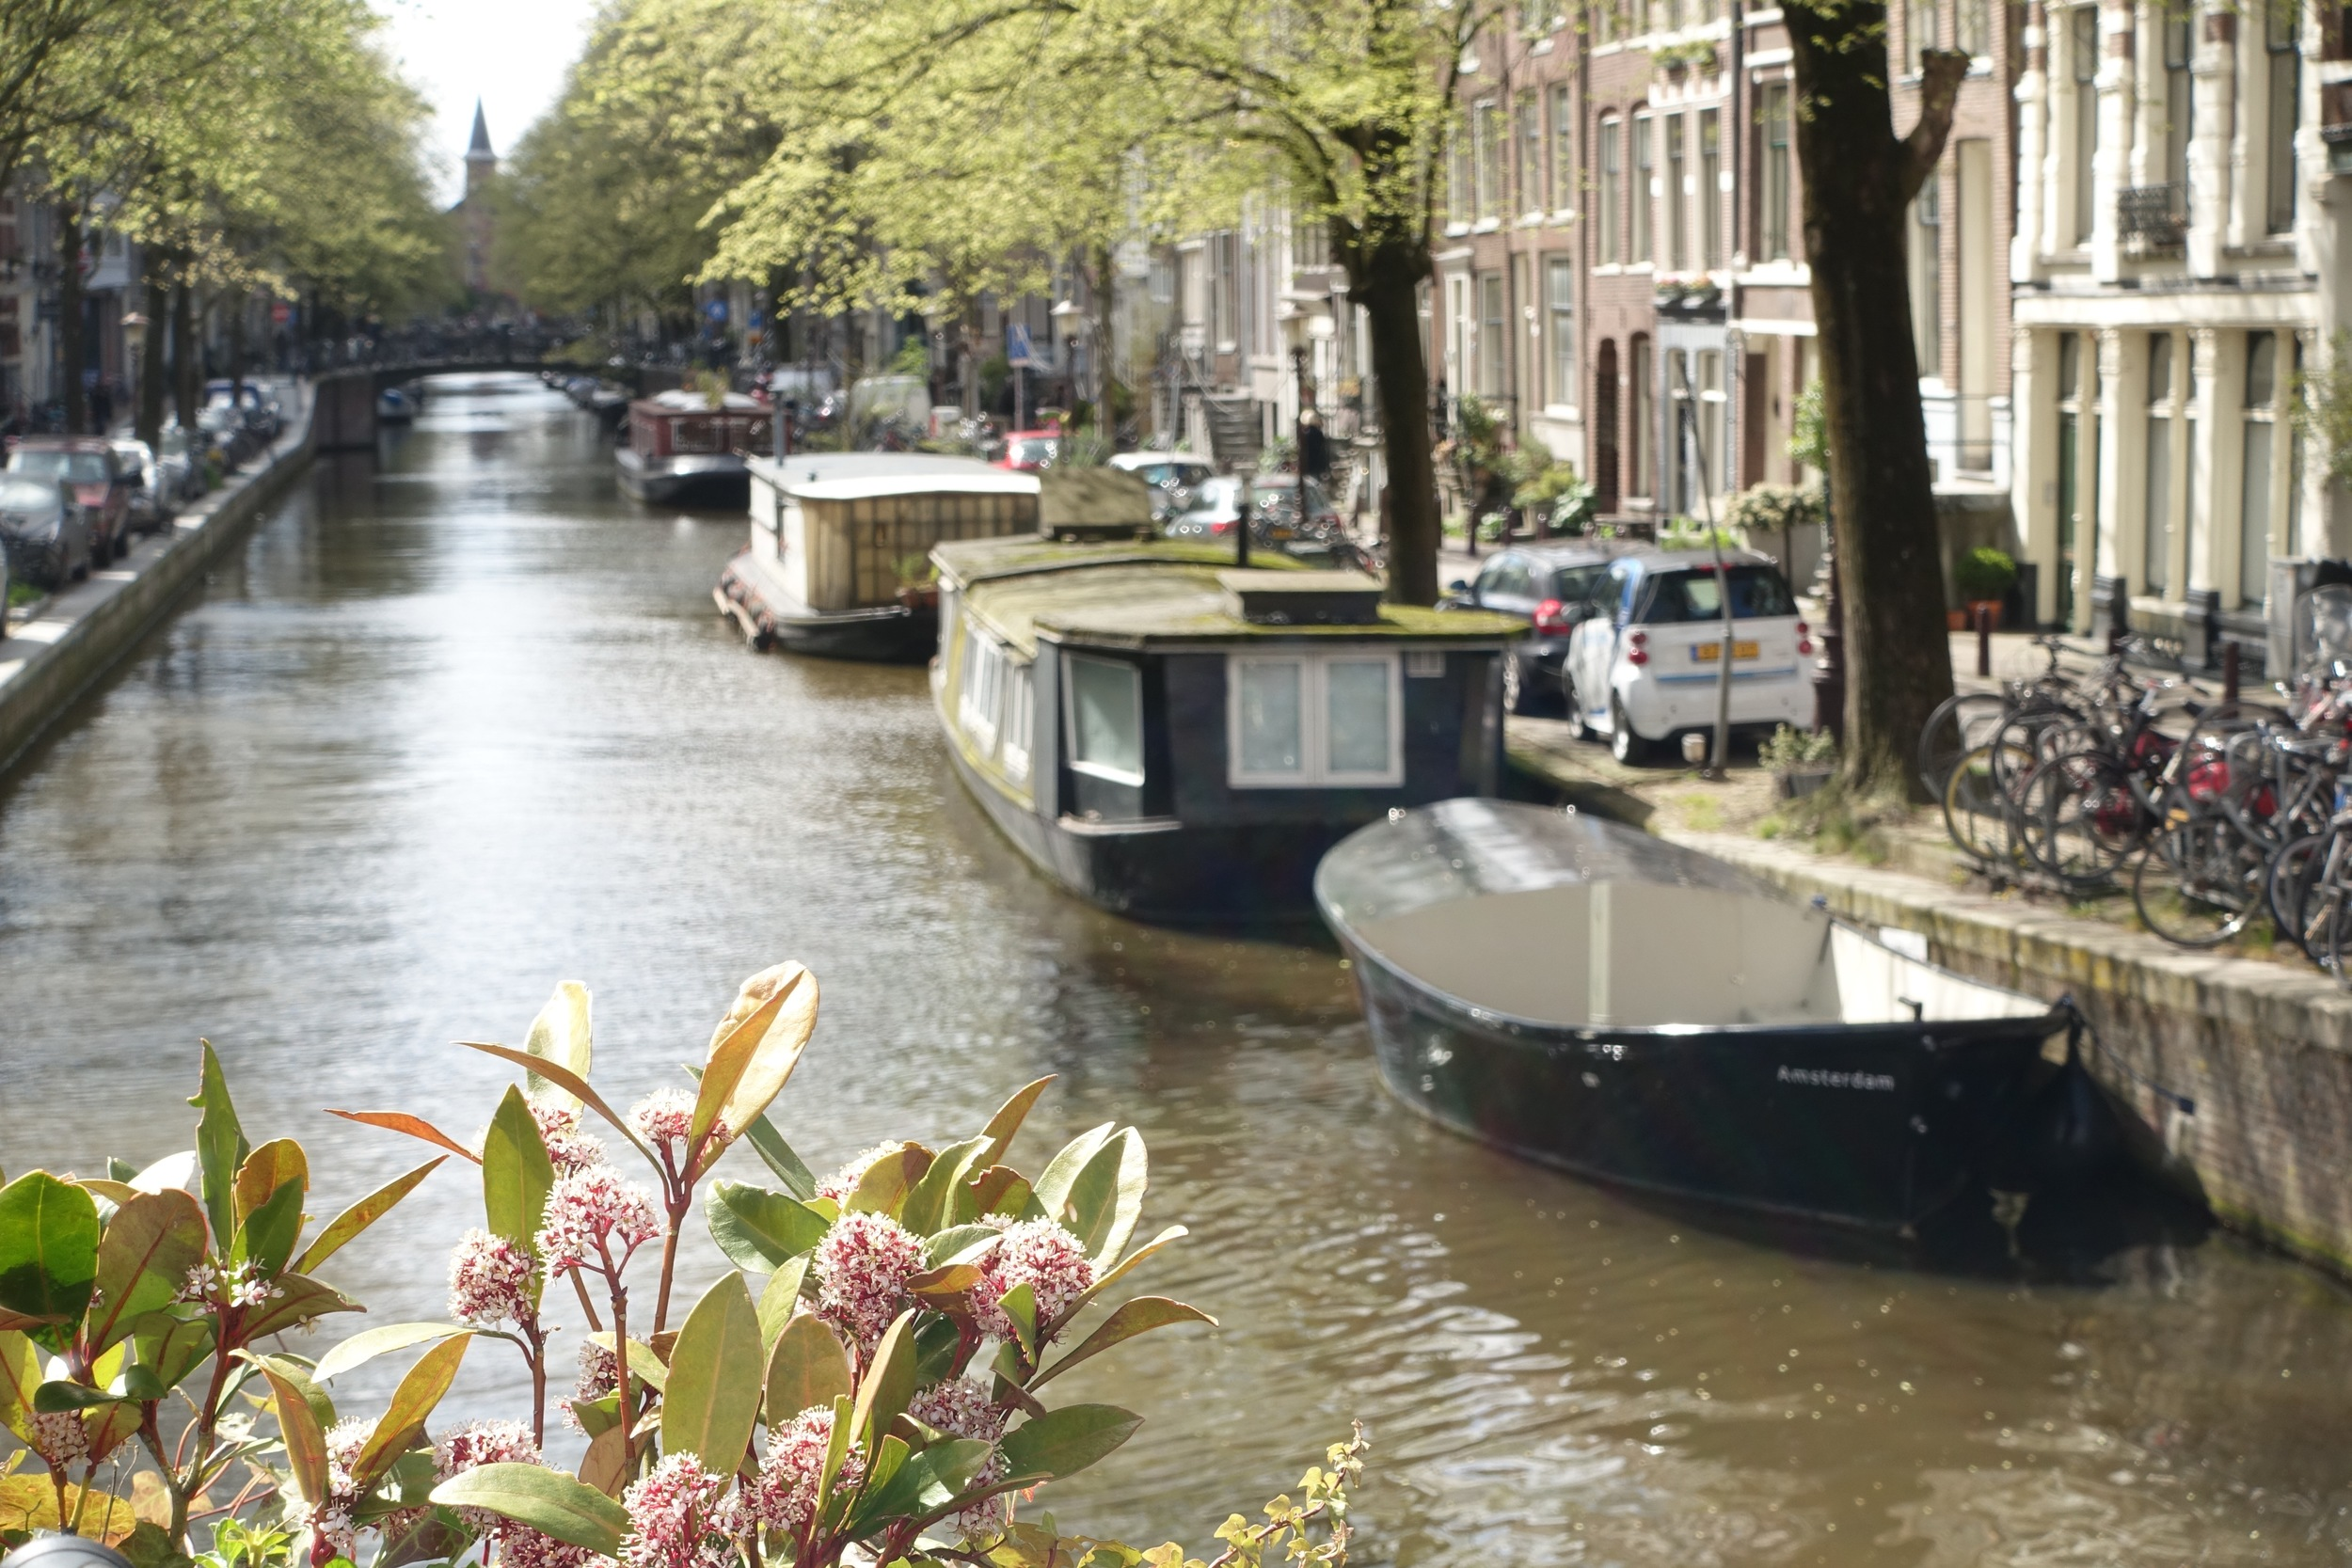 Along the Prinsengracht canal